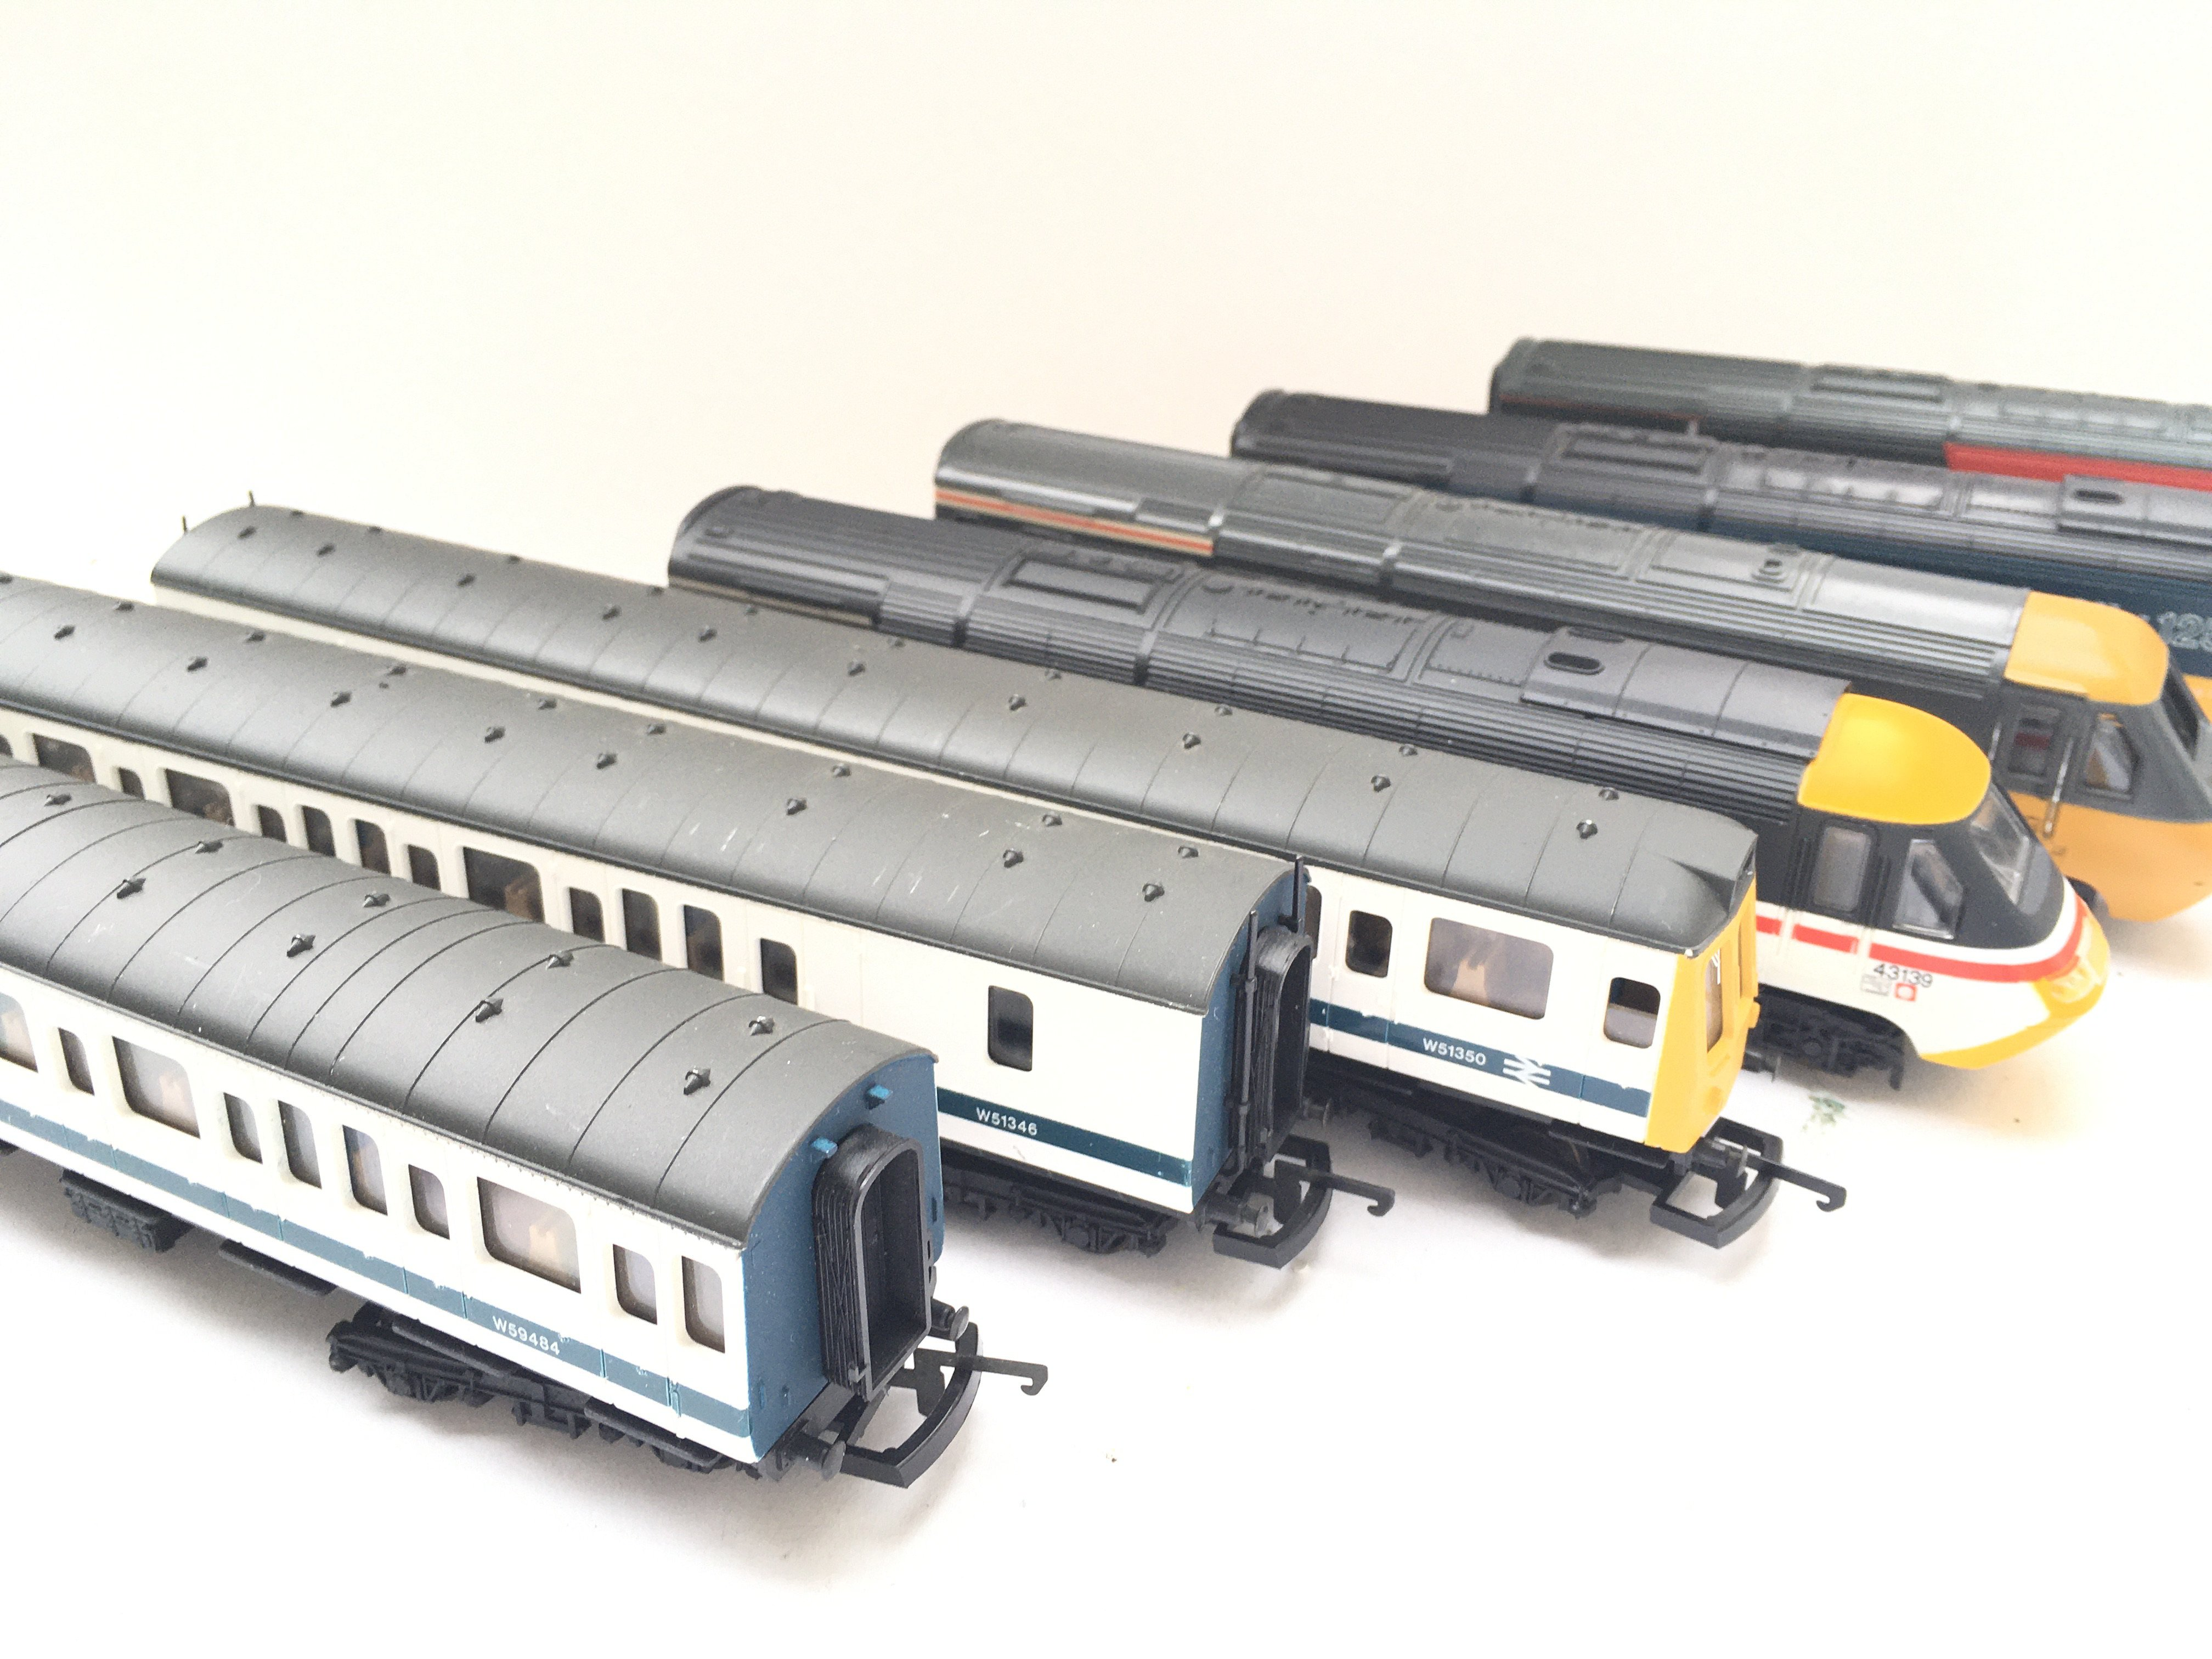 A Collection of 4 X 00 gauge Locomotives 1Dummy an - Image 3 of 3